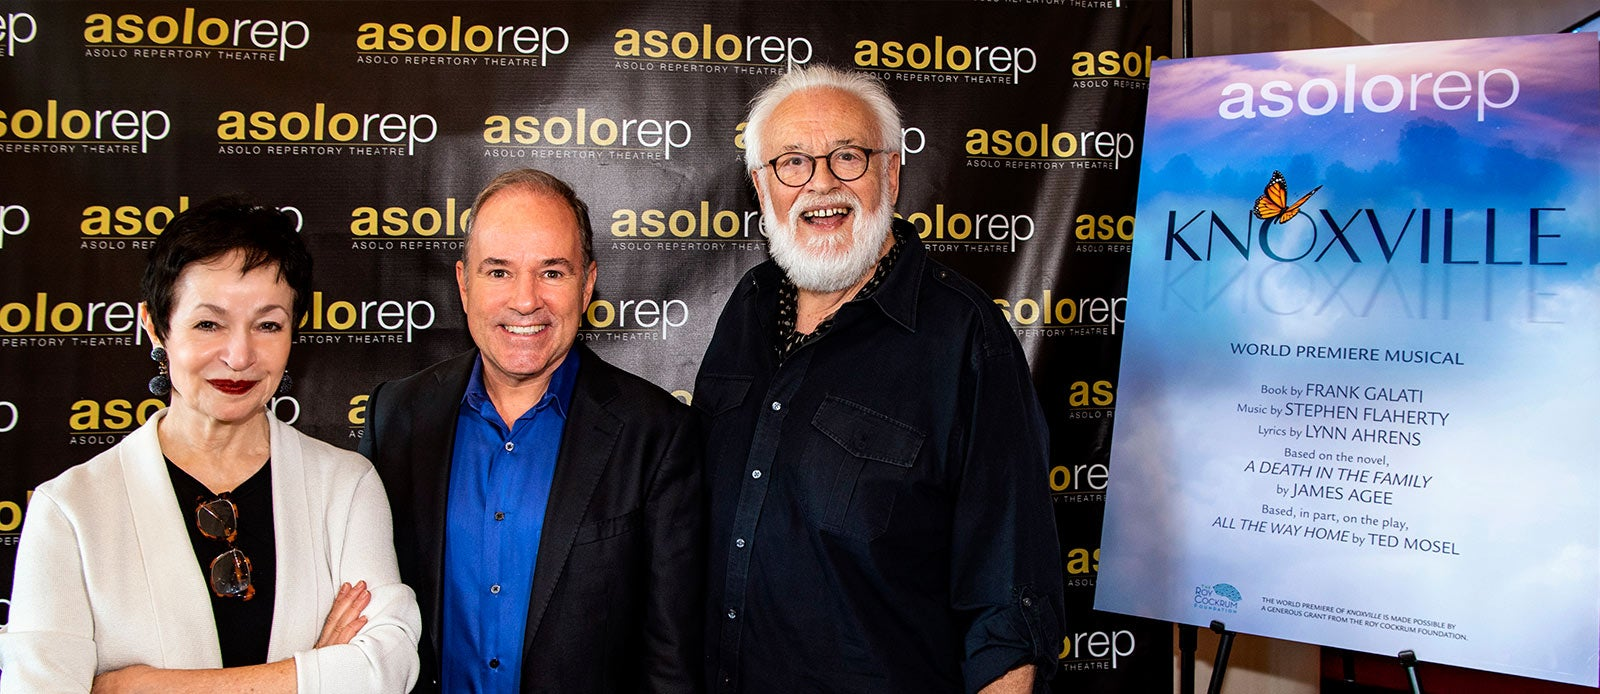 Asolo Rep Announces World Premiere Musical: Knoxville